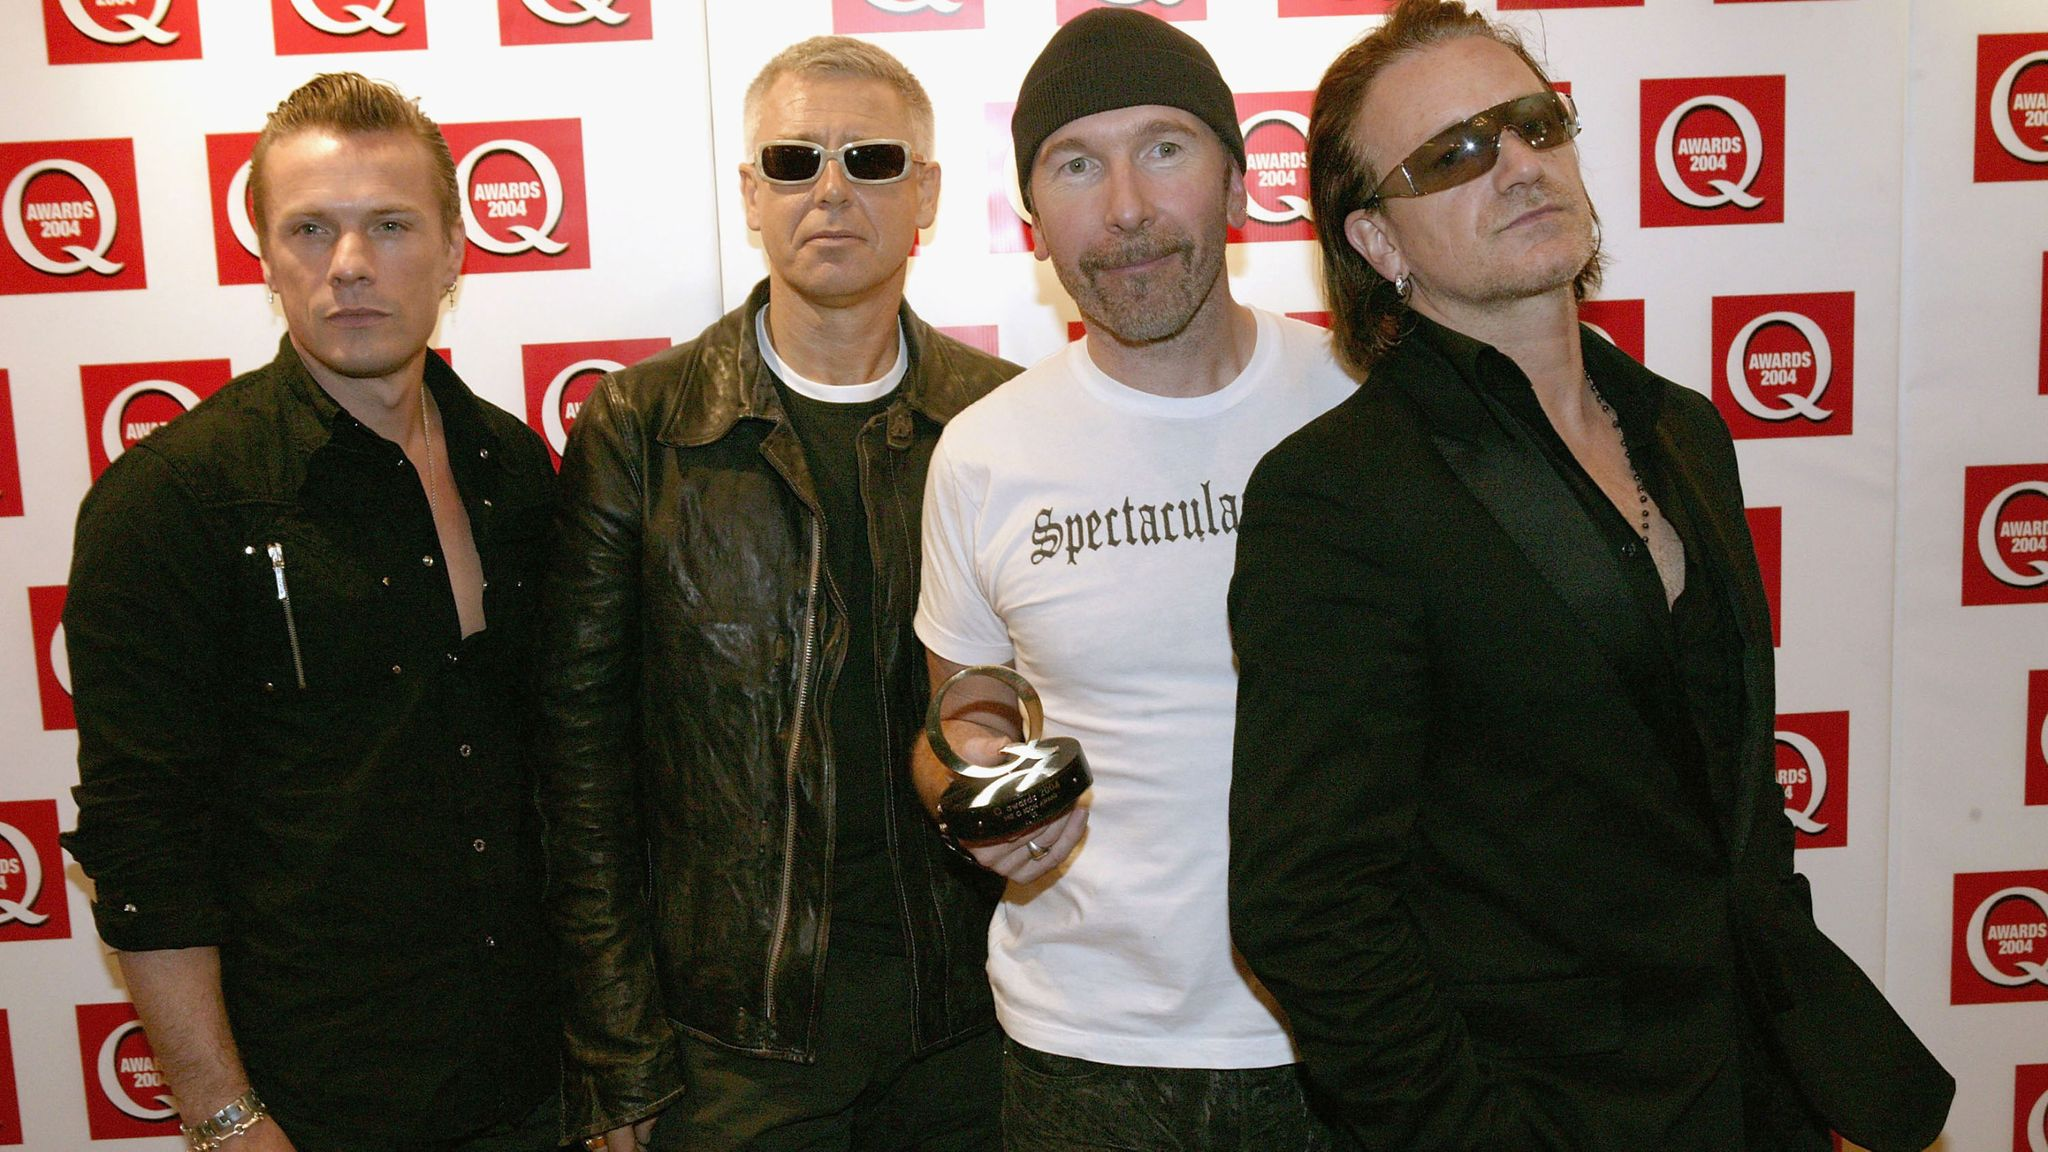 The Irish rock band U2 is seen at the Q Awards in 2004